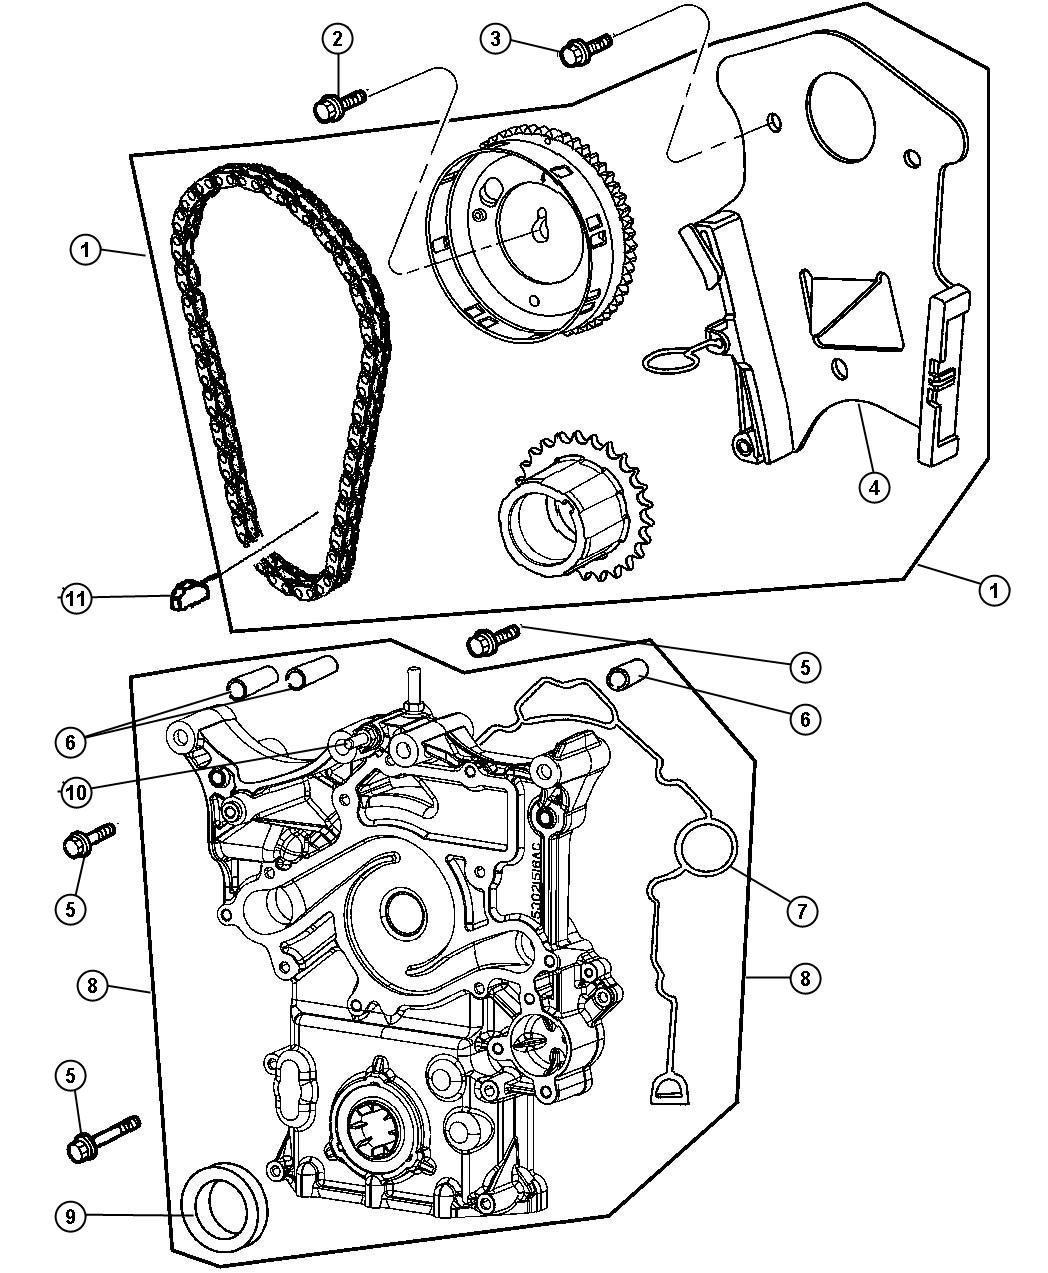 Jeep Commander Timing Chain And Related Parts 5.7L [5.7L